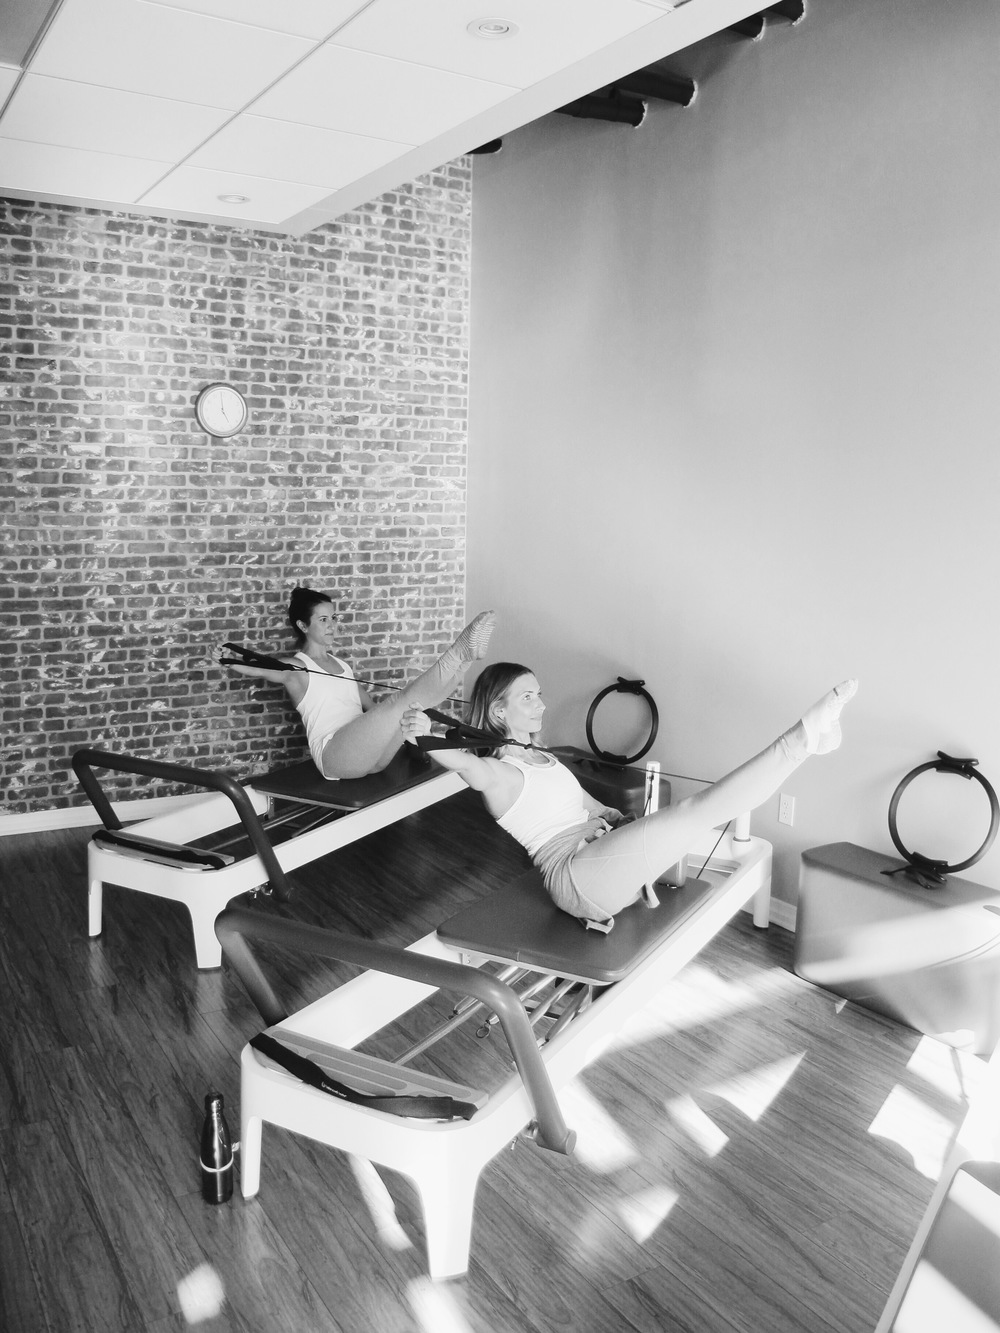 Jenny Redford teaching at Playa Pilates